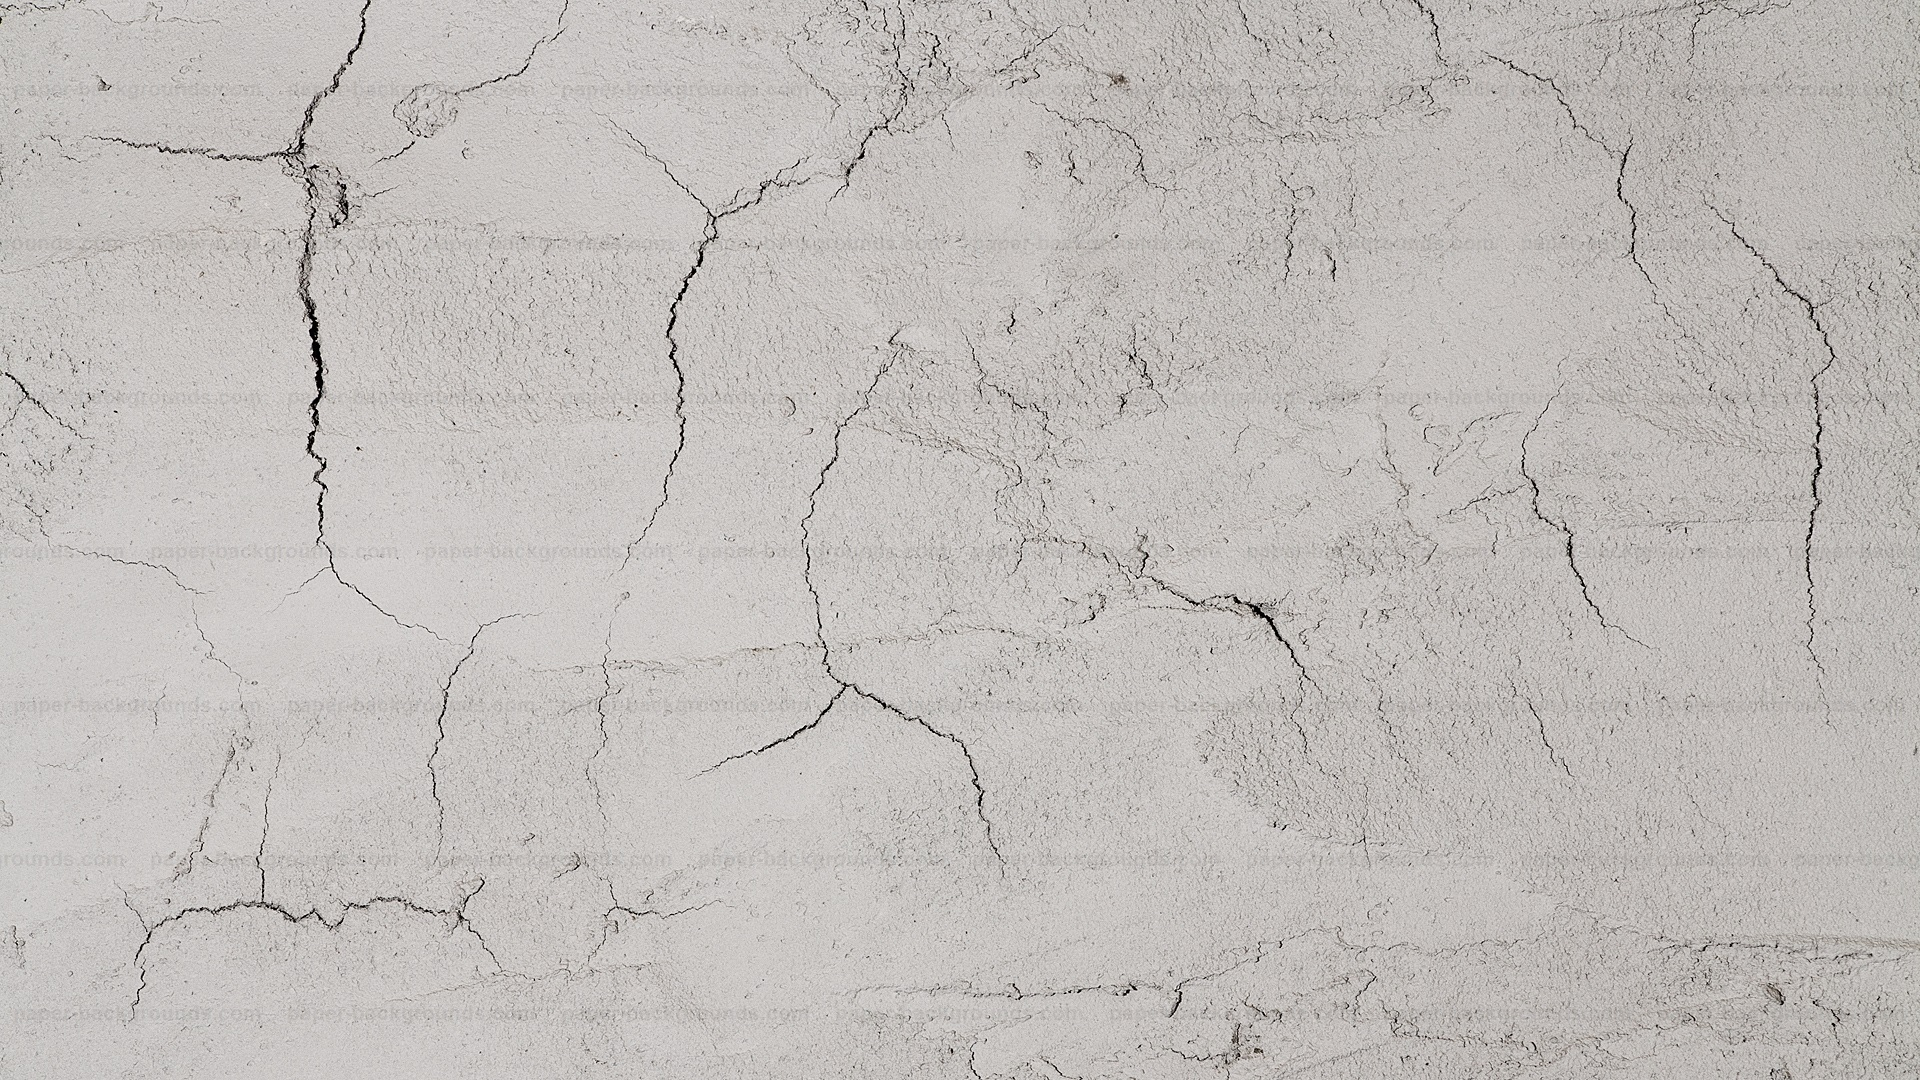 Cracked Concrete Wall Texture HD